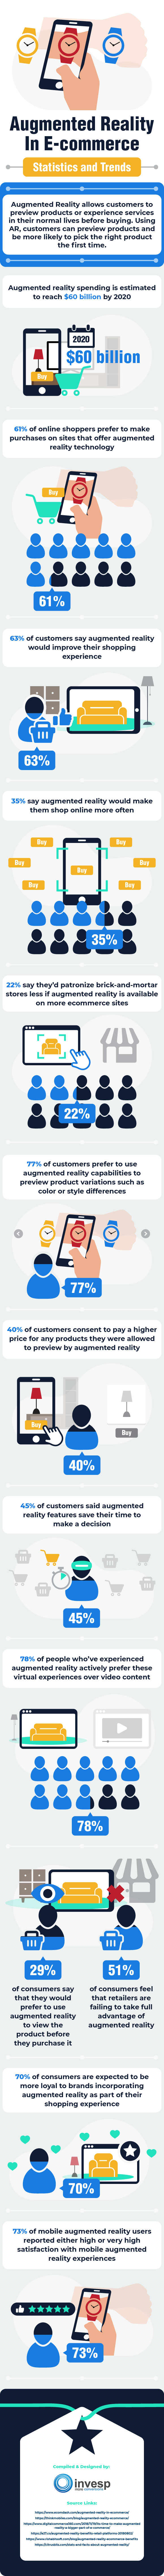 Augmented Reality Infographic 2020